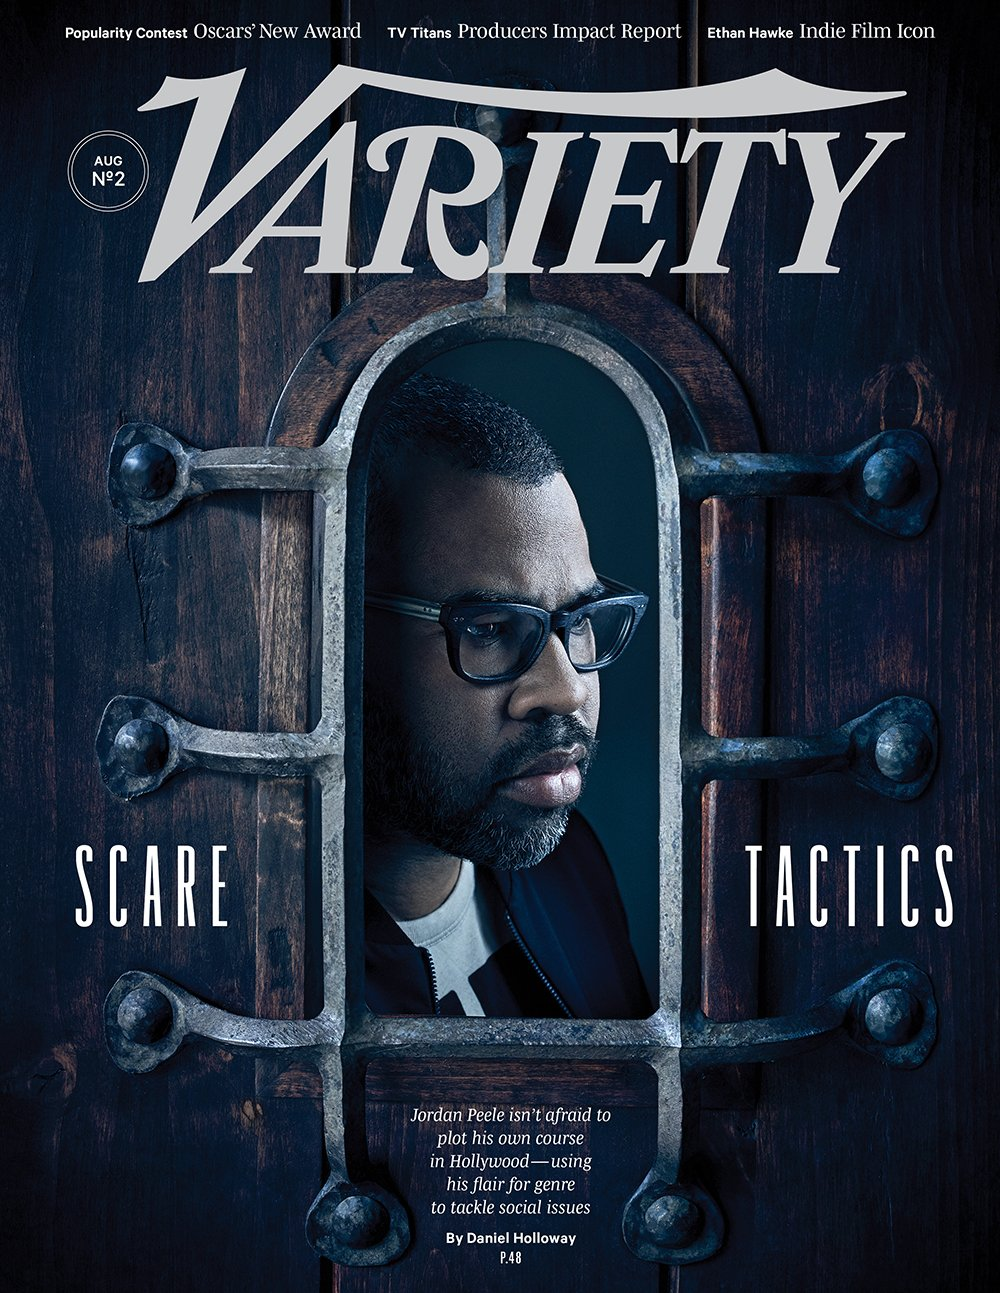 What's next for @JordanPeele and his house of horrors (COVER STORY) https://t.co/uUDhg8v1Yy https://t.co/UOuGXv2UL4